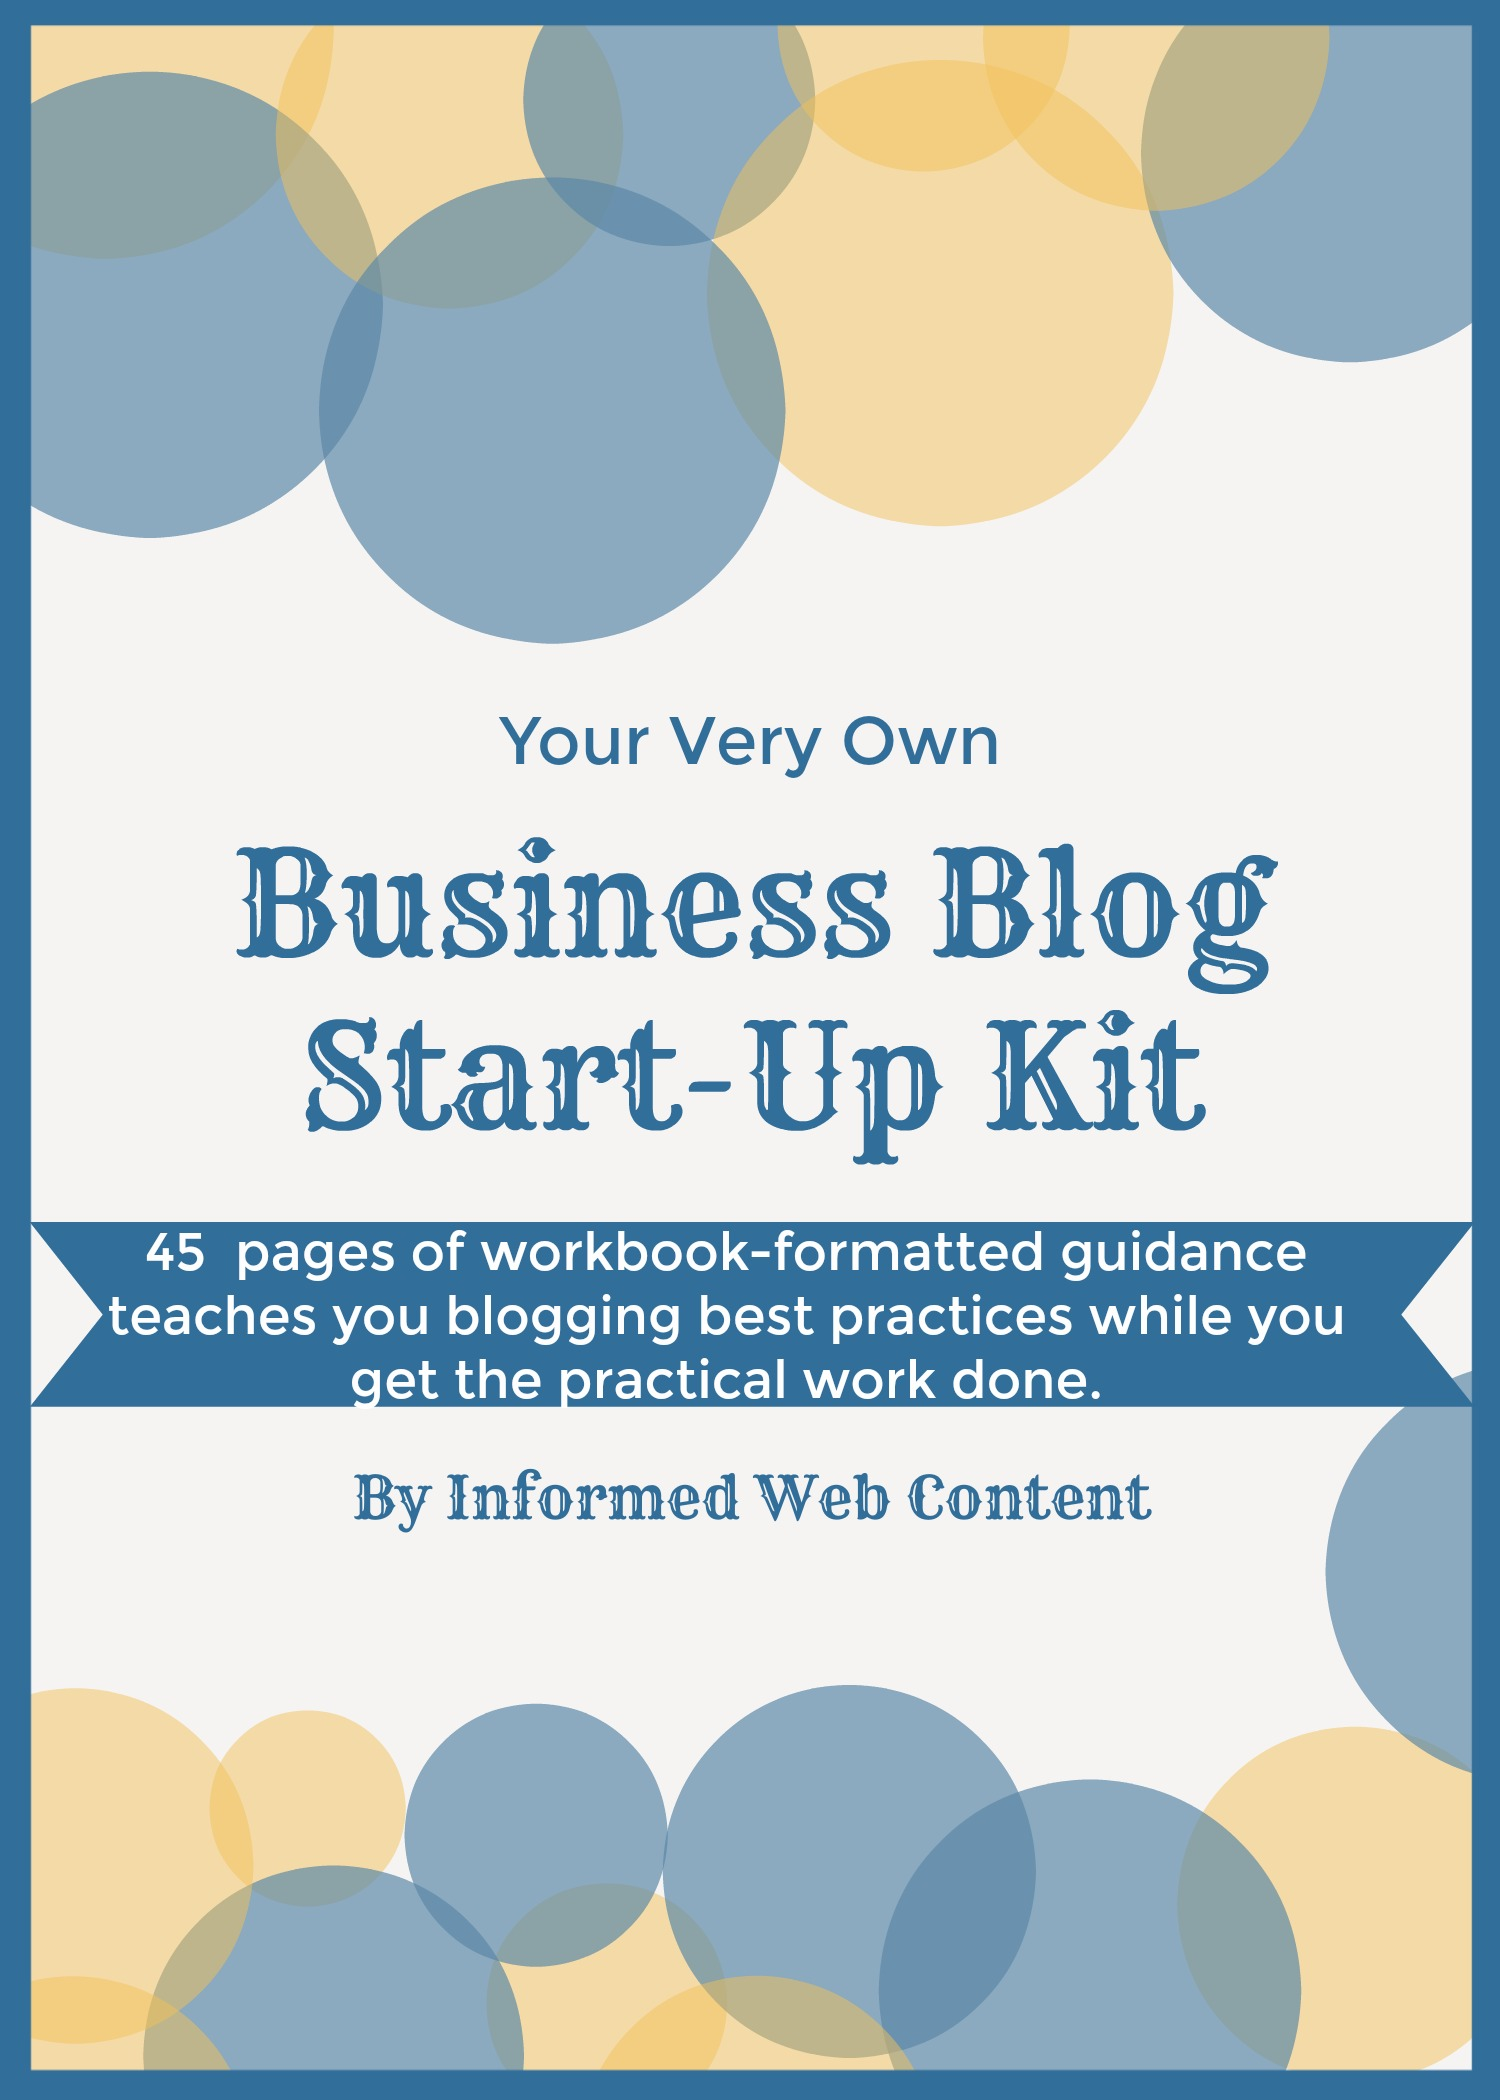 Small Business Blog Start-Up Kit Ebook